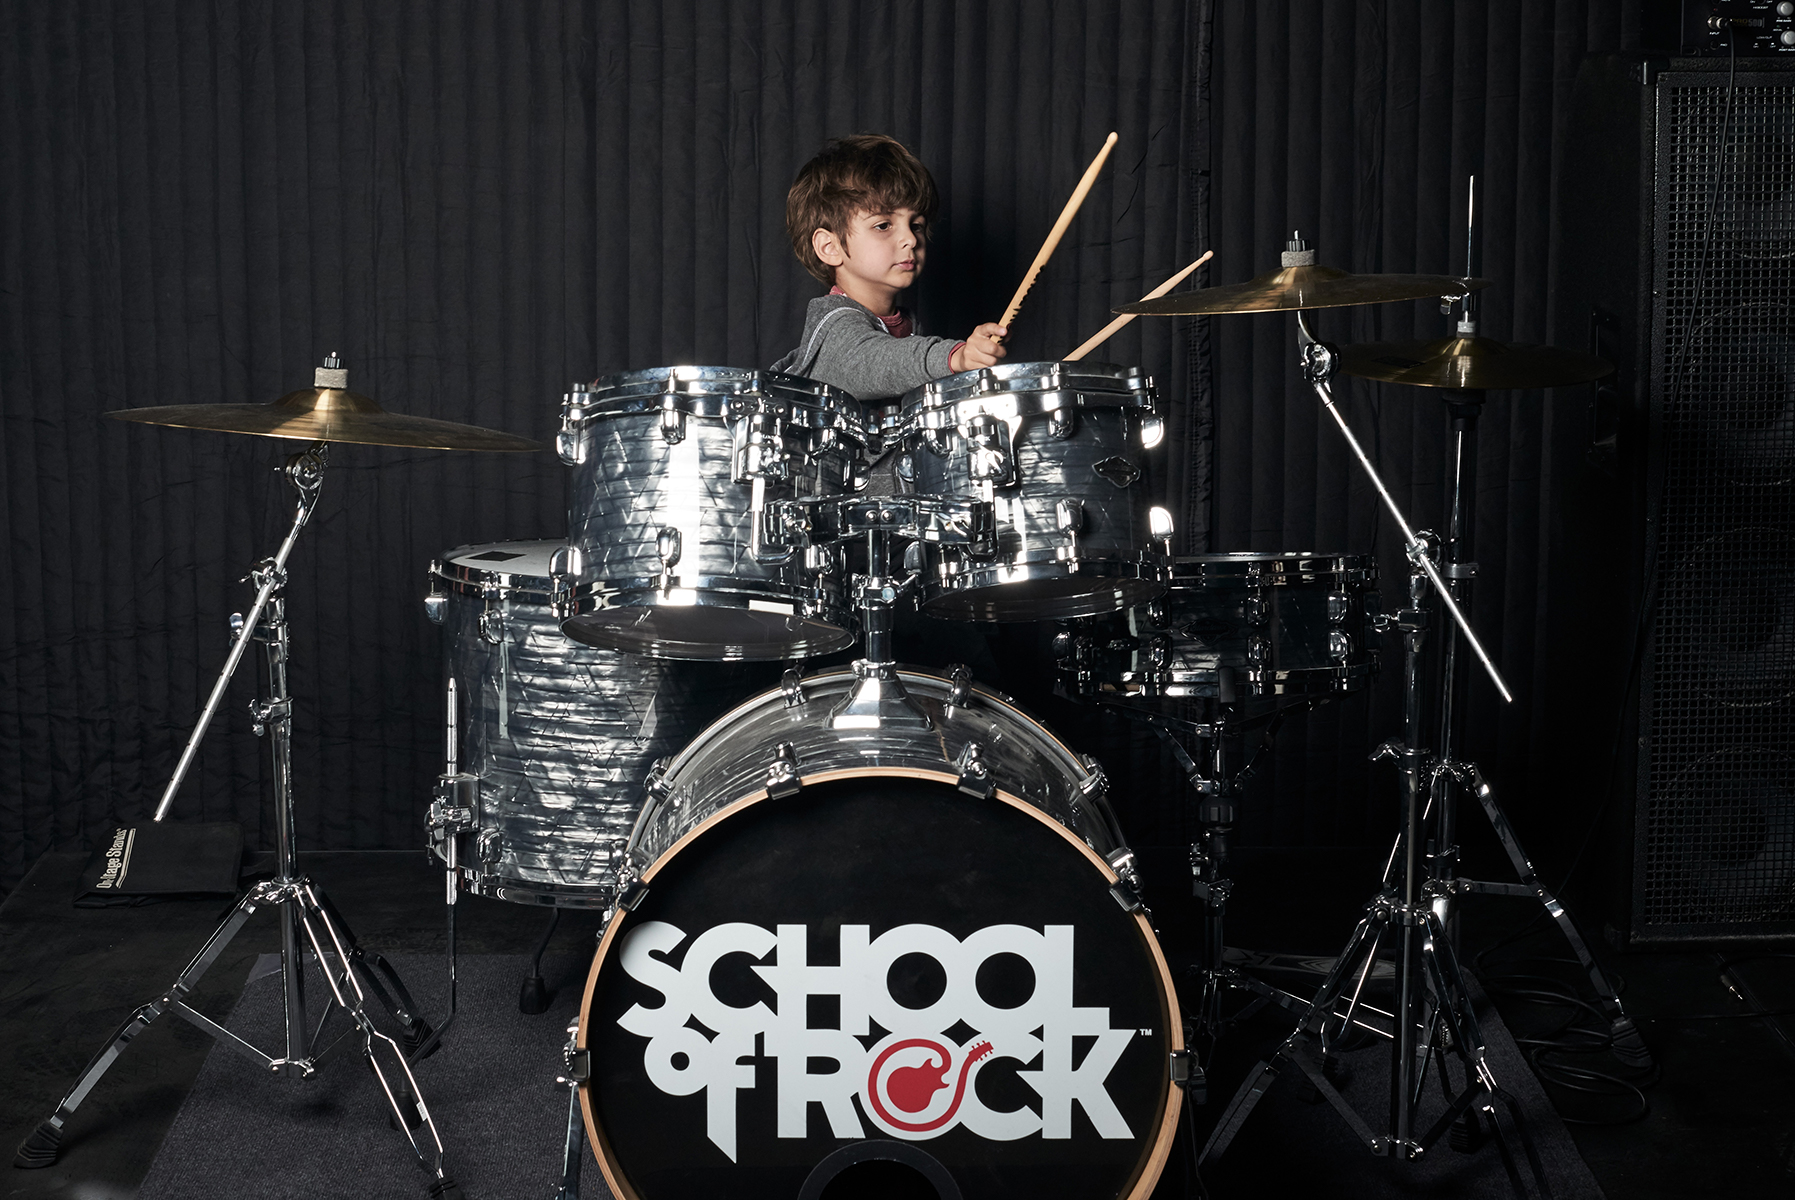 Beginner learning to play the drums